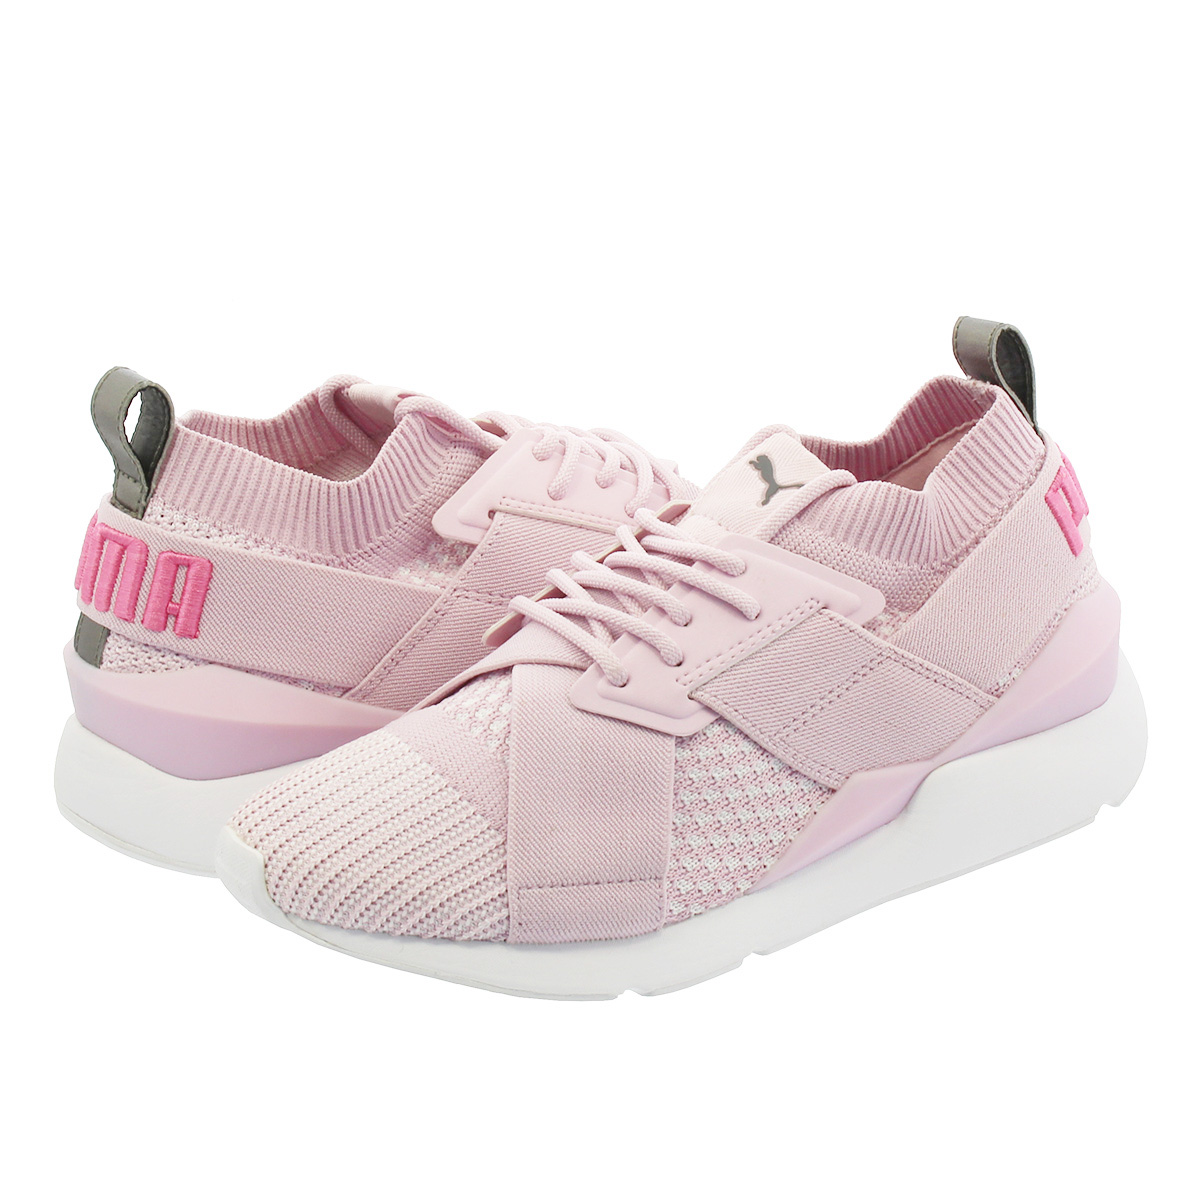 PUMA MUSE EVOKNIT WMNS プーマ ミューズ エヴォニット ウィメンズ WINSOME ORCHID/WINSOME ORCHID 365536-07